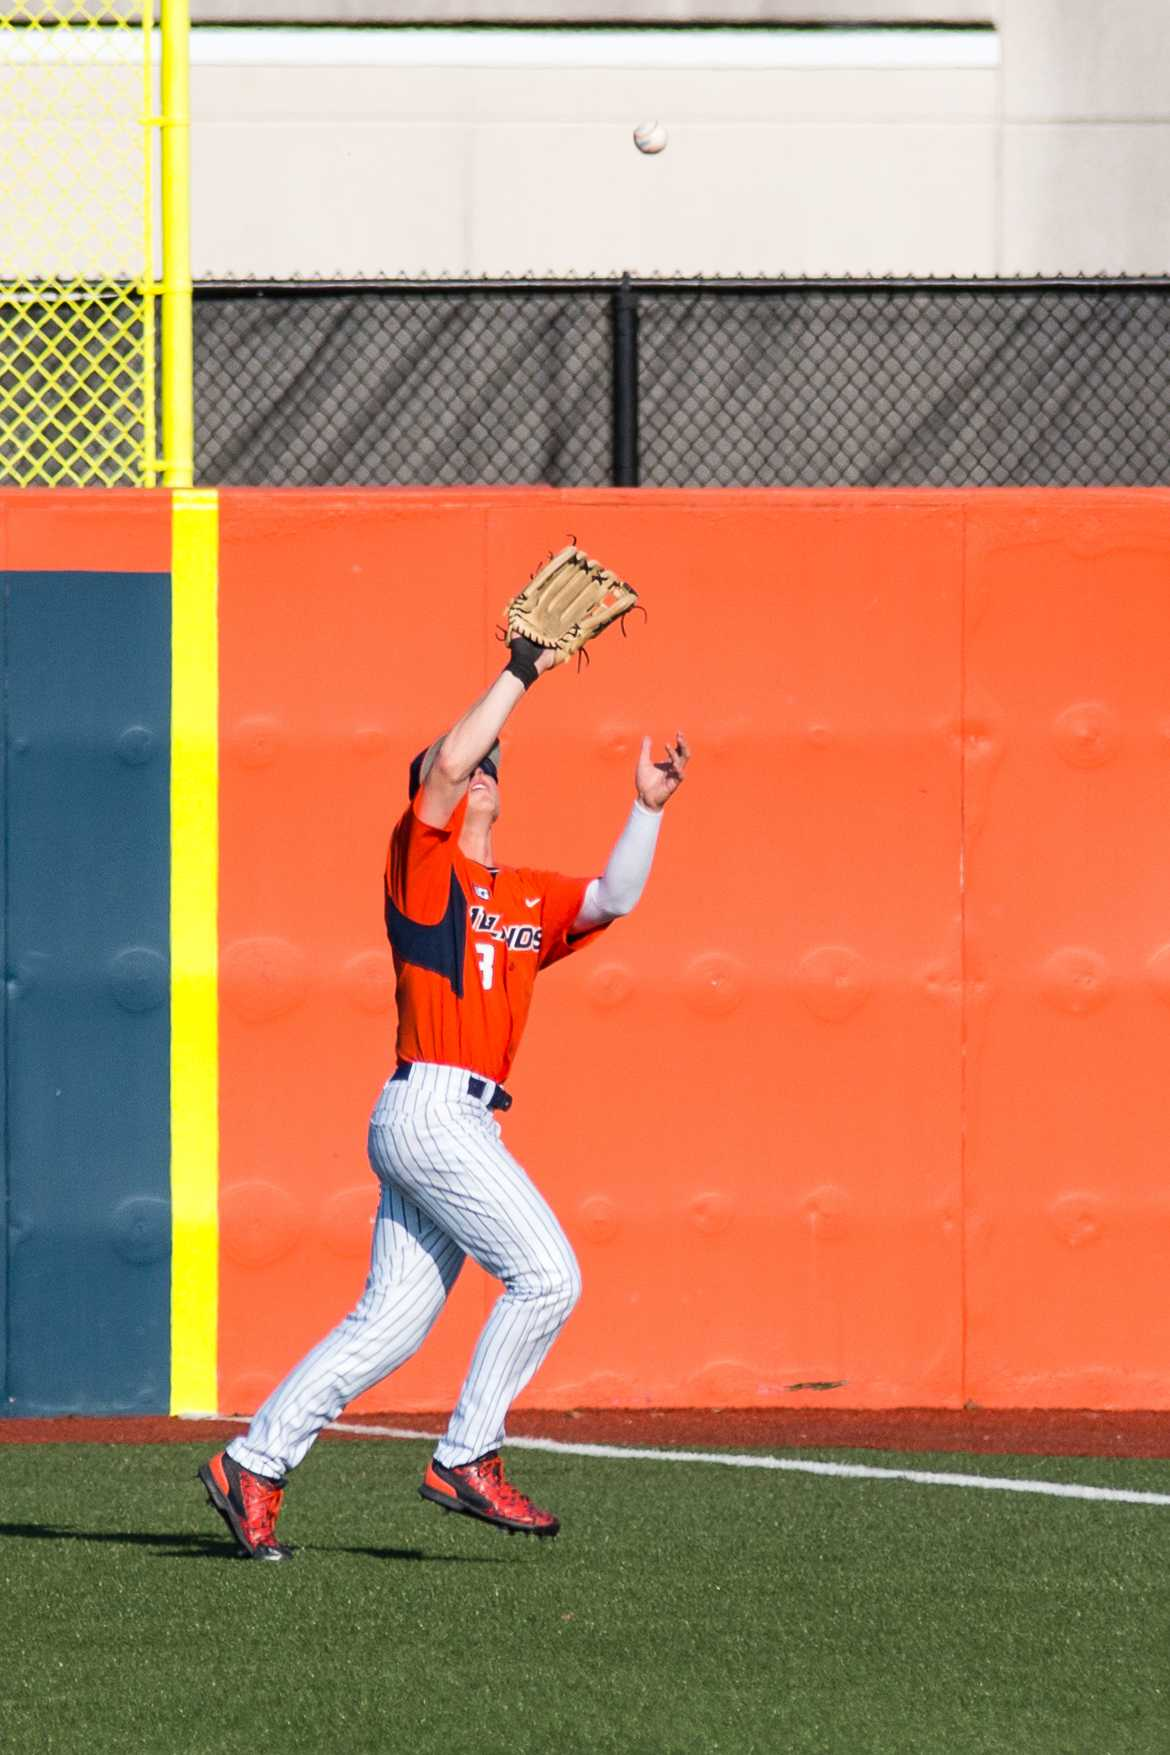 Illinois right fielder Jack Yalowitz gets ready to catch a fly ball during game two of the series against St. Louis University at Illinois Field on Saturday, April 16. The Illini won 3-1.